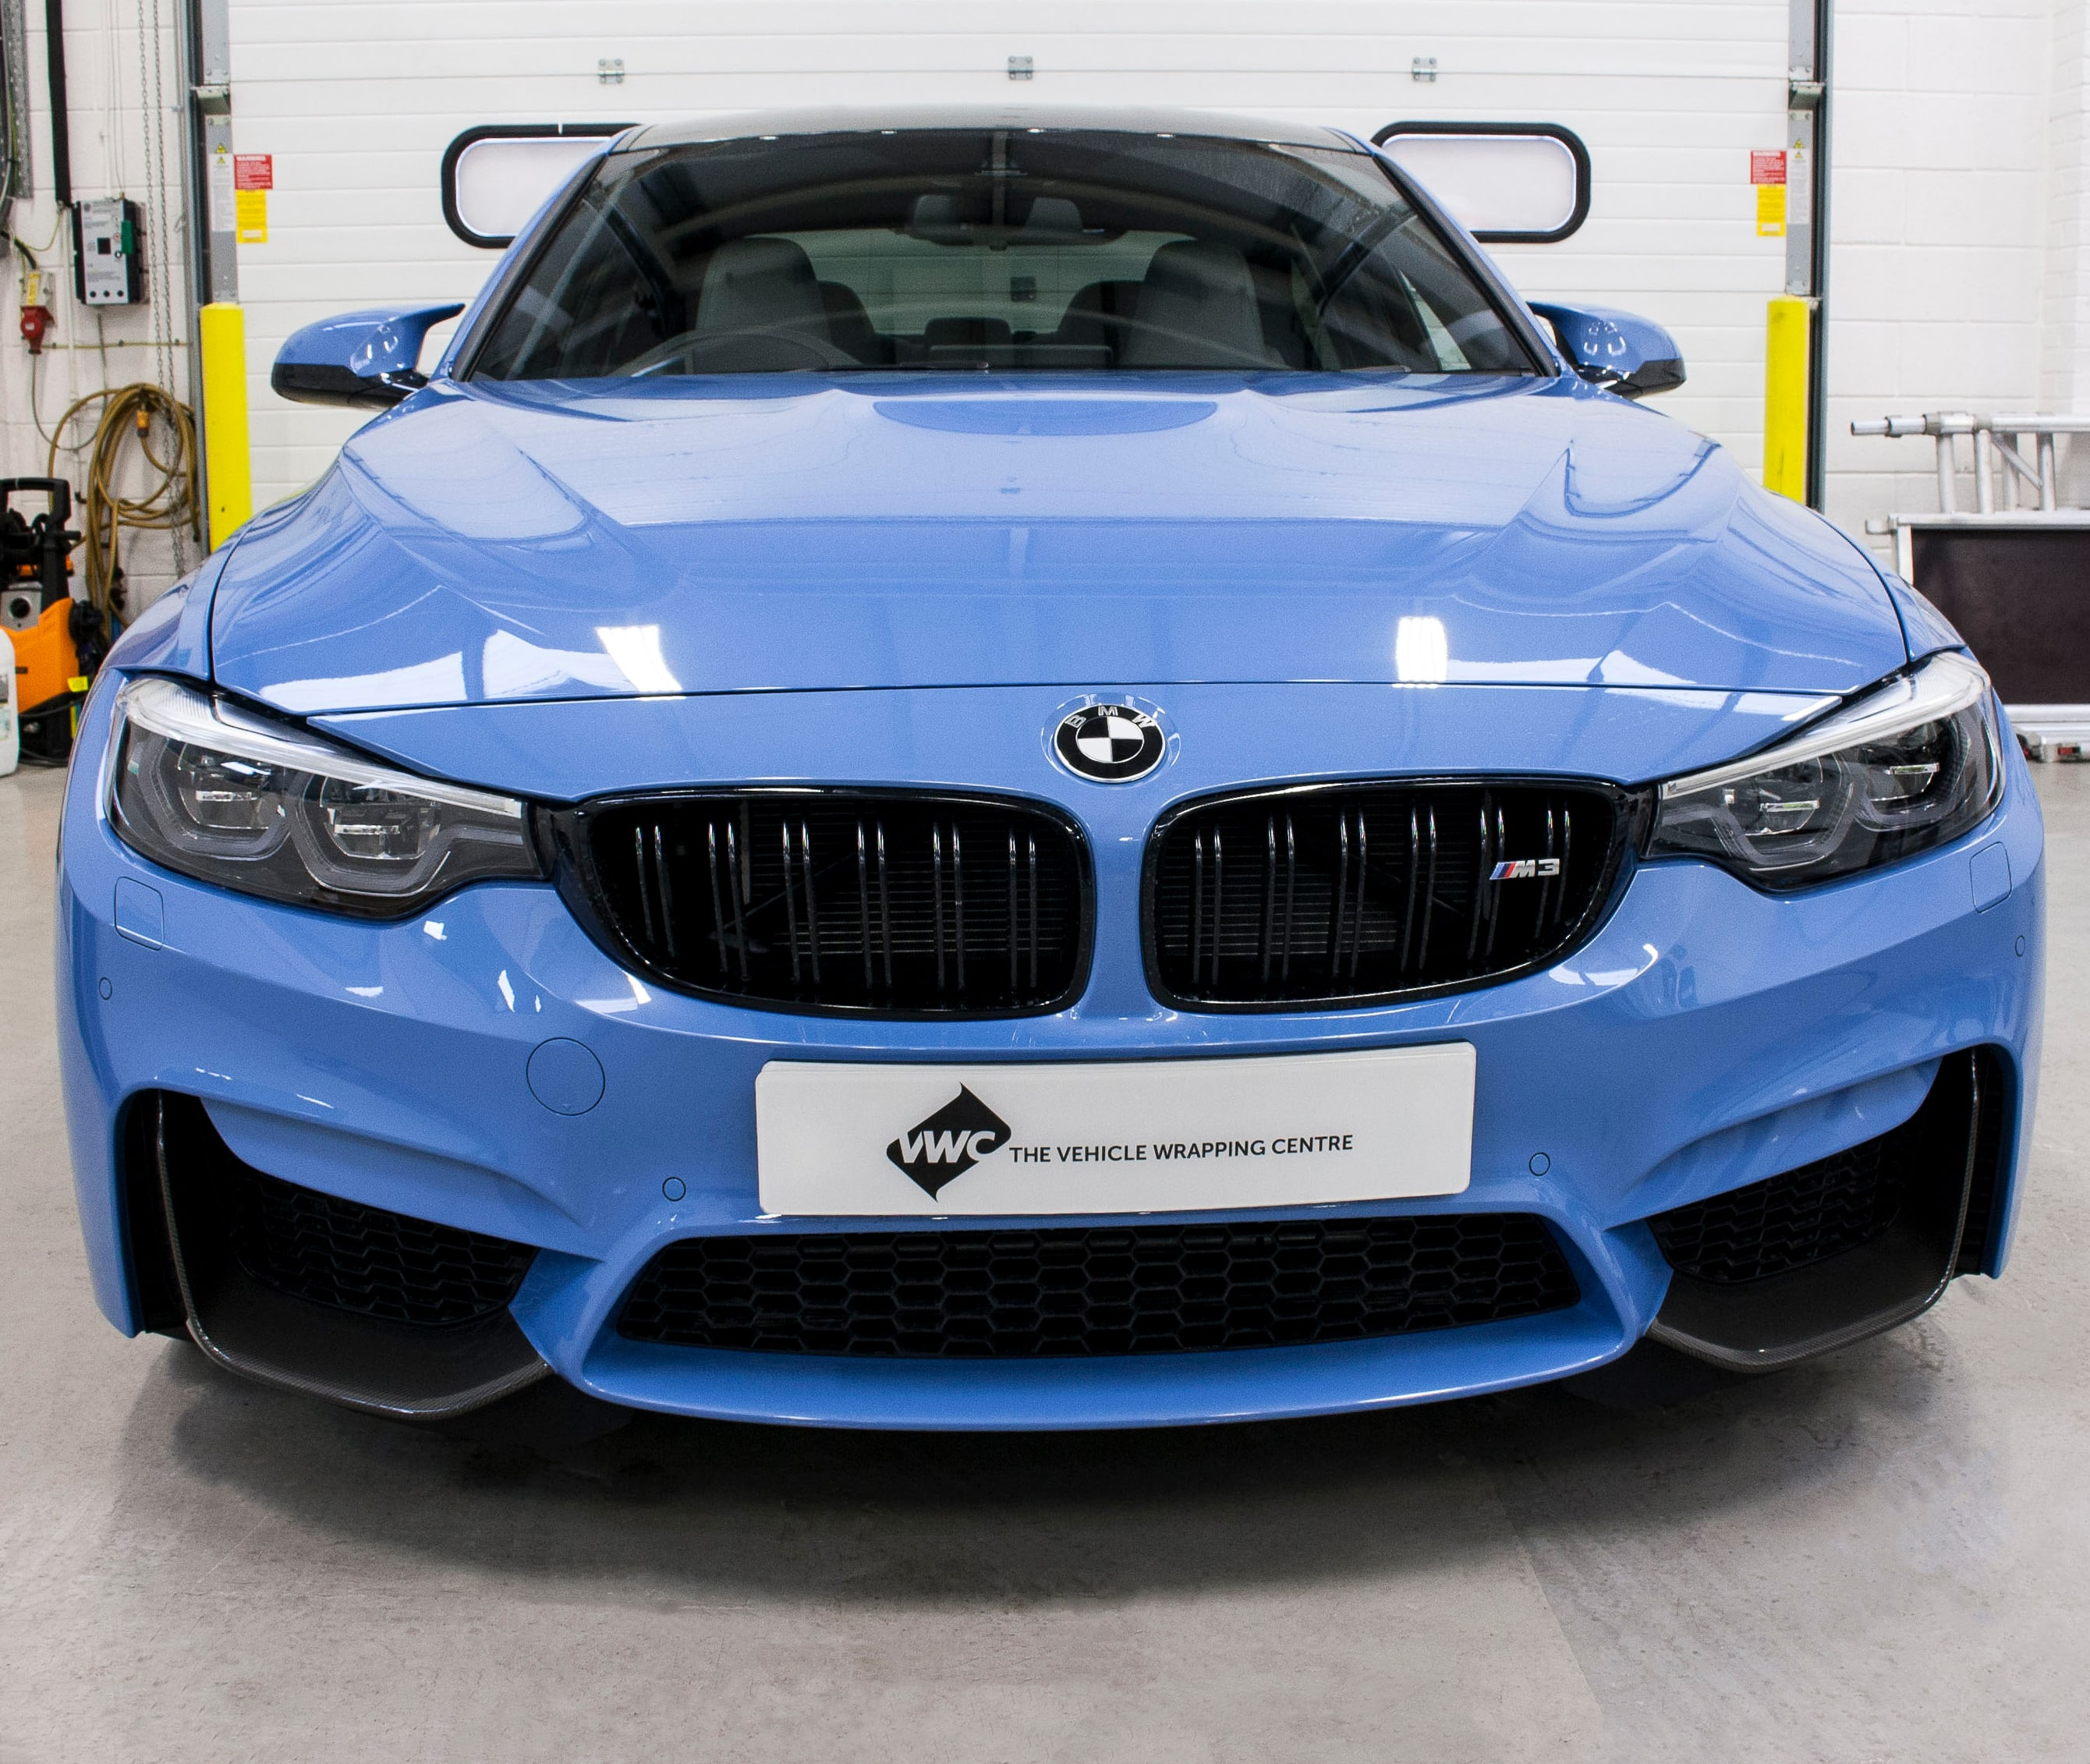 Bmw Yas Marina Blue: Sott Gloss Carbon Fibre Personal Vehicle Wrap Project